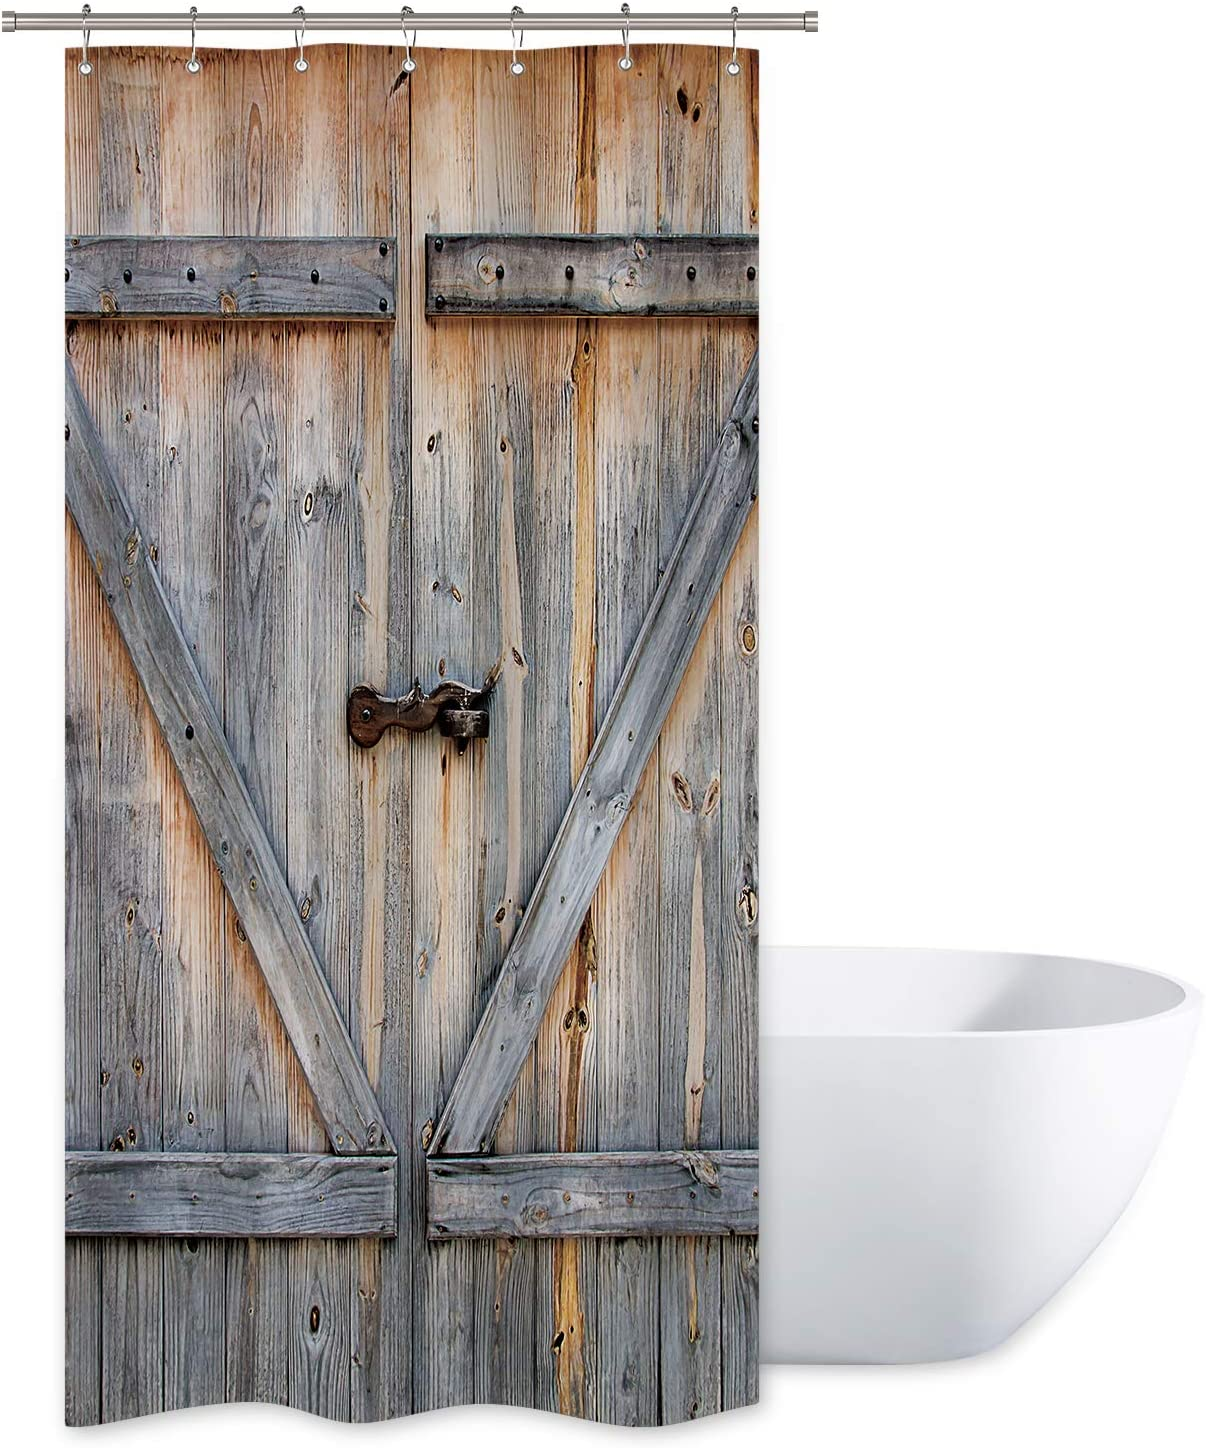 Riyidecor Stall Barn Door Shower Curtain 36wx72h Rustic Wooden Farmhouse Vintage Barnwood Decor Fabric Polyester Waterproof 7 Pack Plastic Hooks Home Kitchen